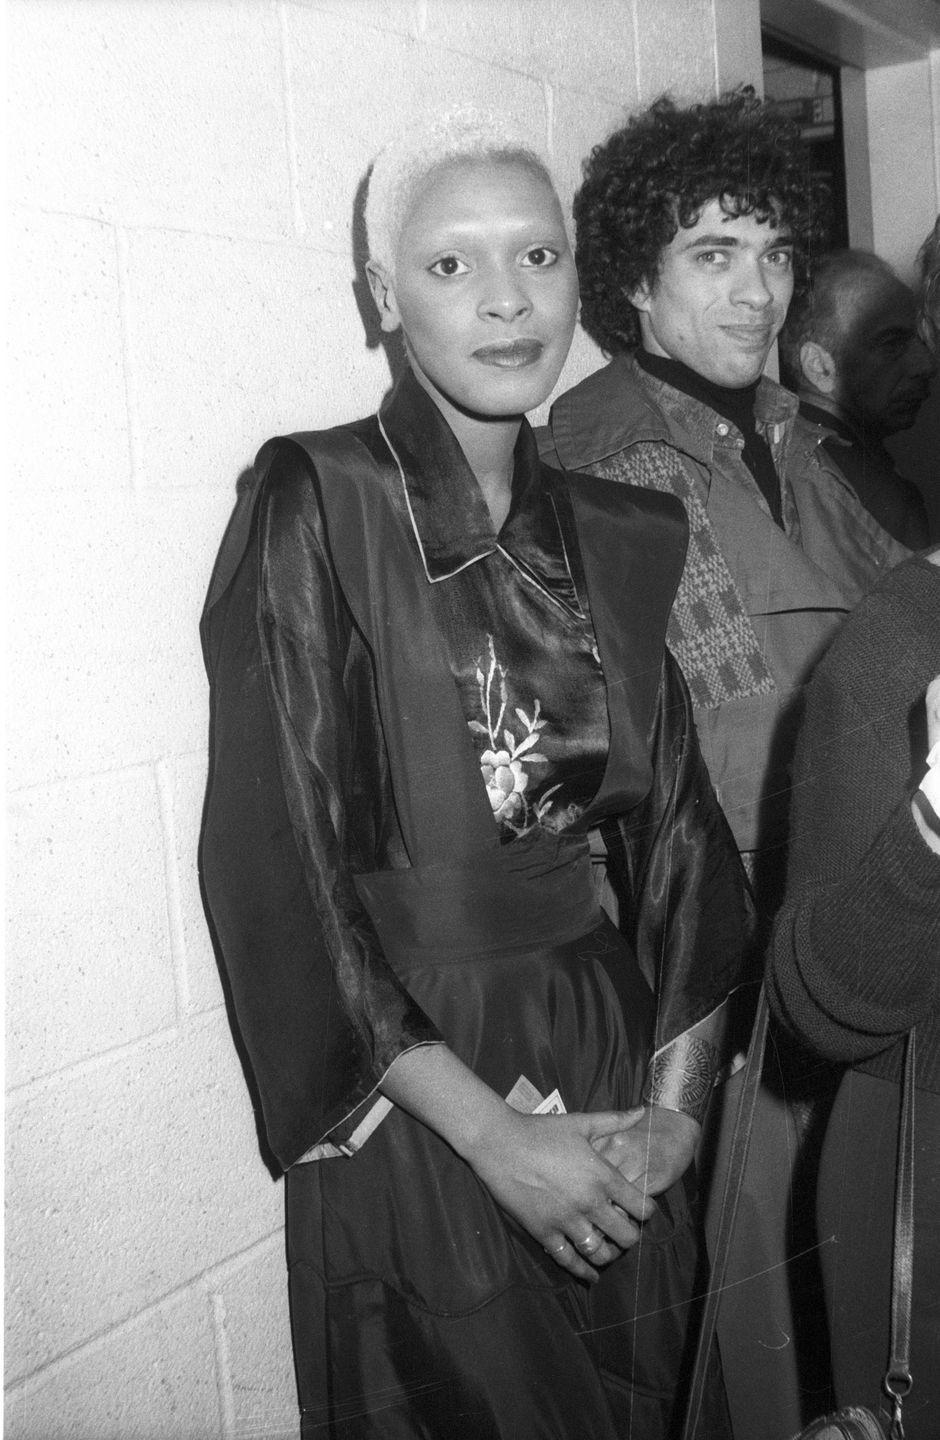 <p>Ava Cherry hangs out backstage at a Faces concert in New York in 1975. The singer was closely tied to David Bowie at the time. </p>